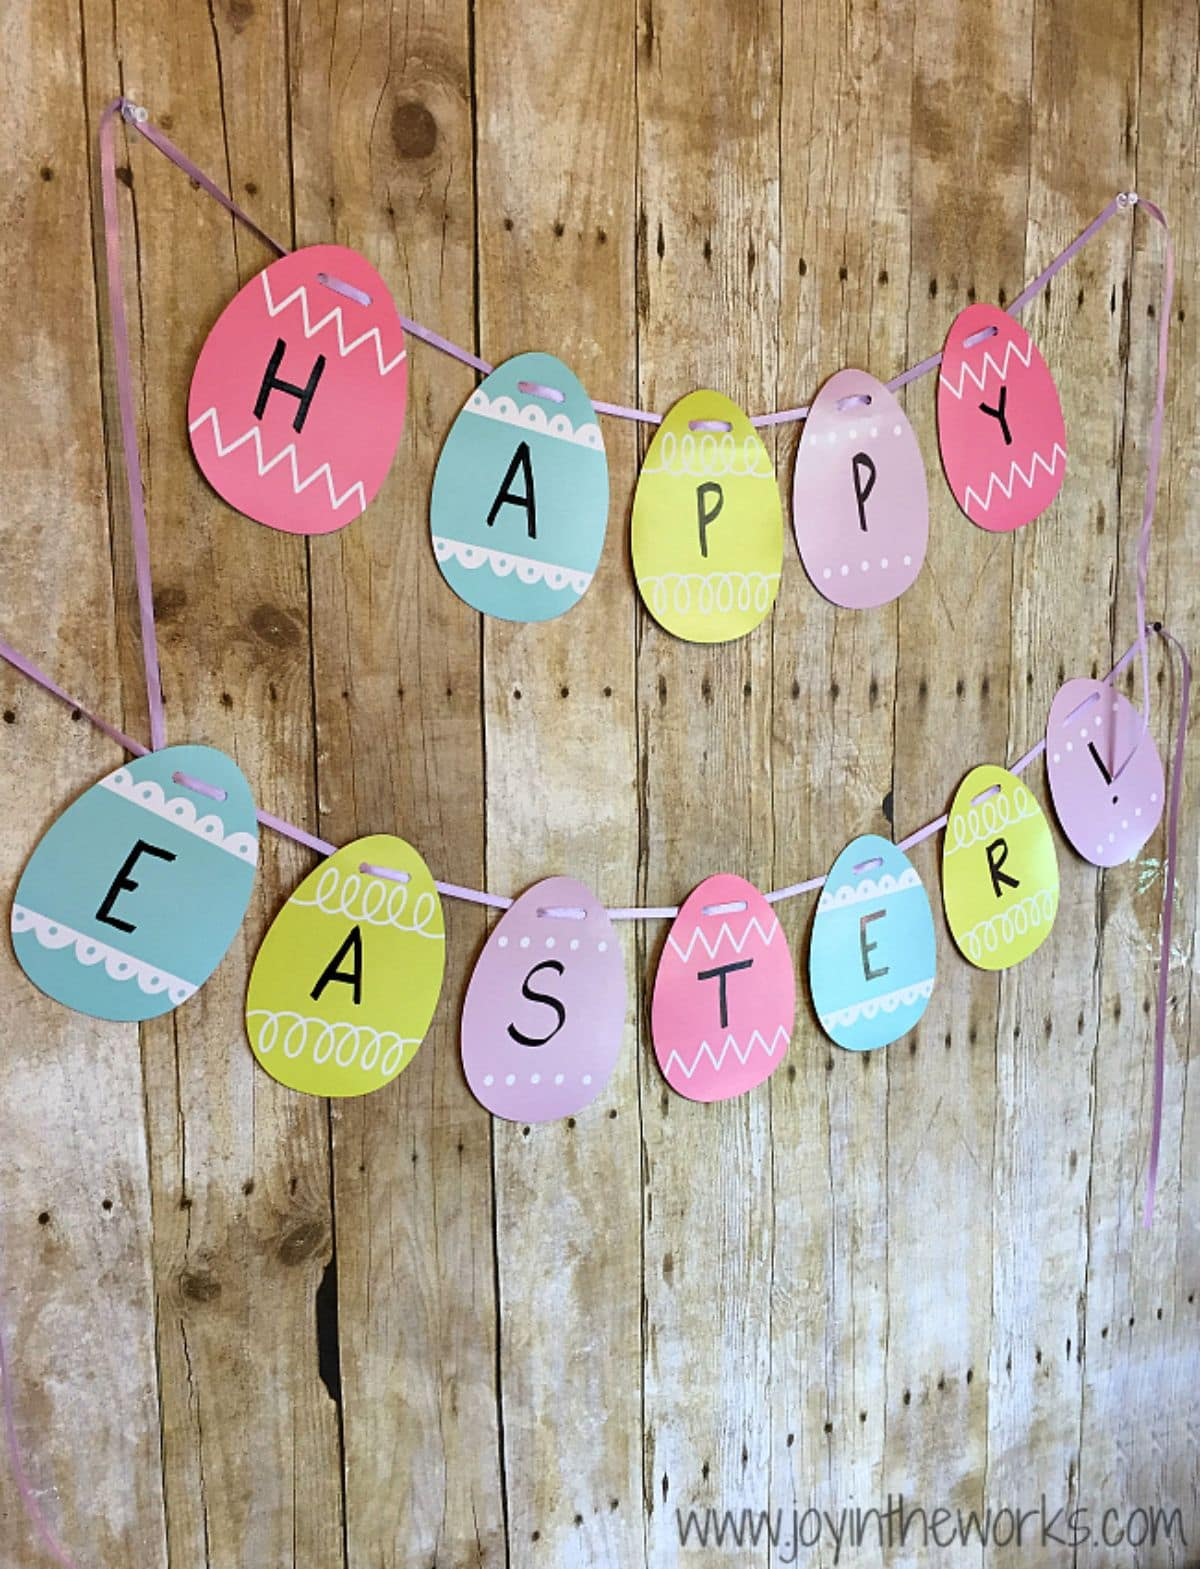 a garland of striped eggs spelling out Happy Easter hang on strings against a wooden backdrop